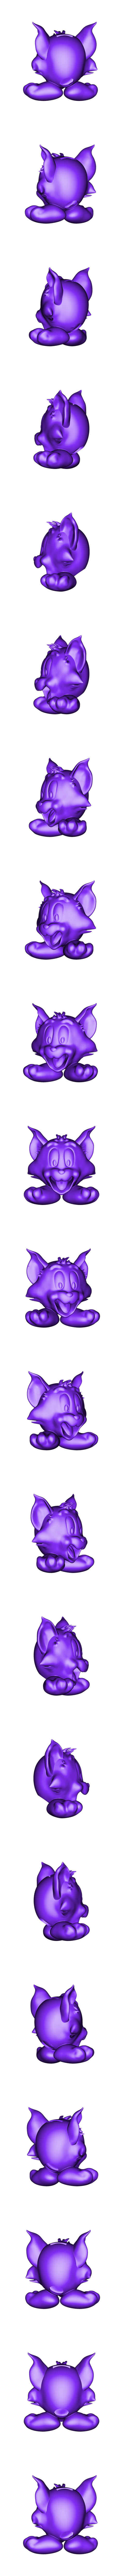 chat.OBJ Download OBJ file piggy bank - piggy bank • 3D print design, syl39